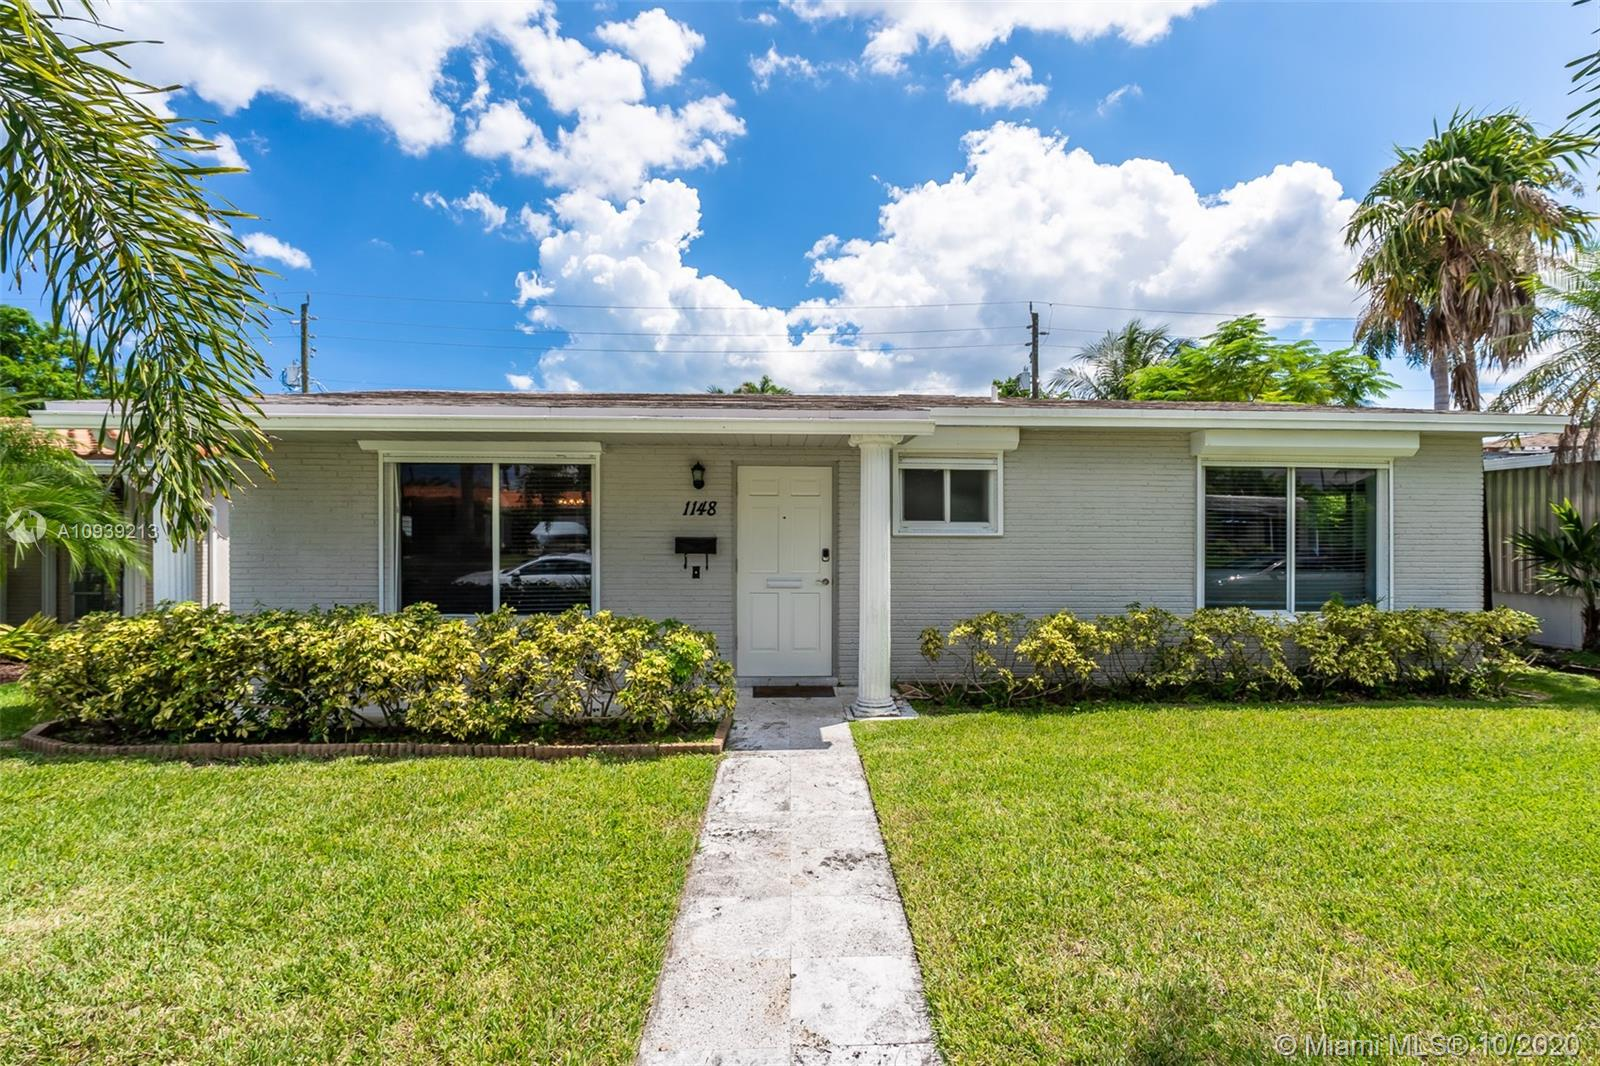 Photo of 1148 Johnson St # listing for Sale